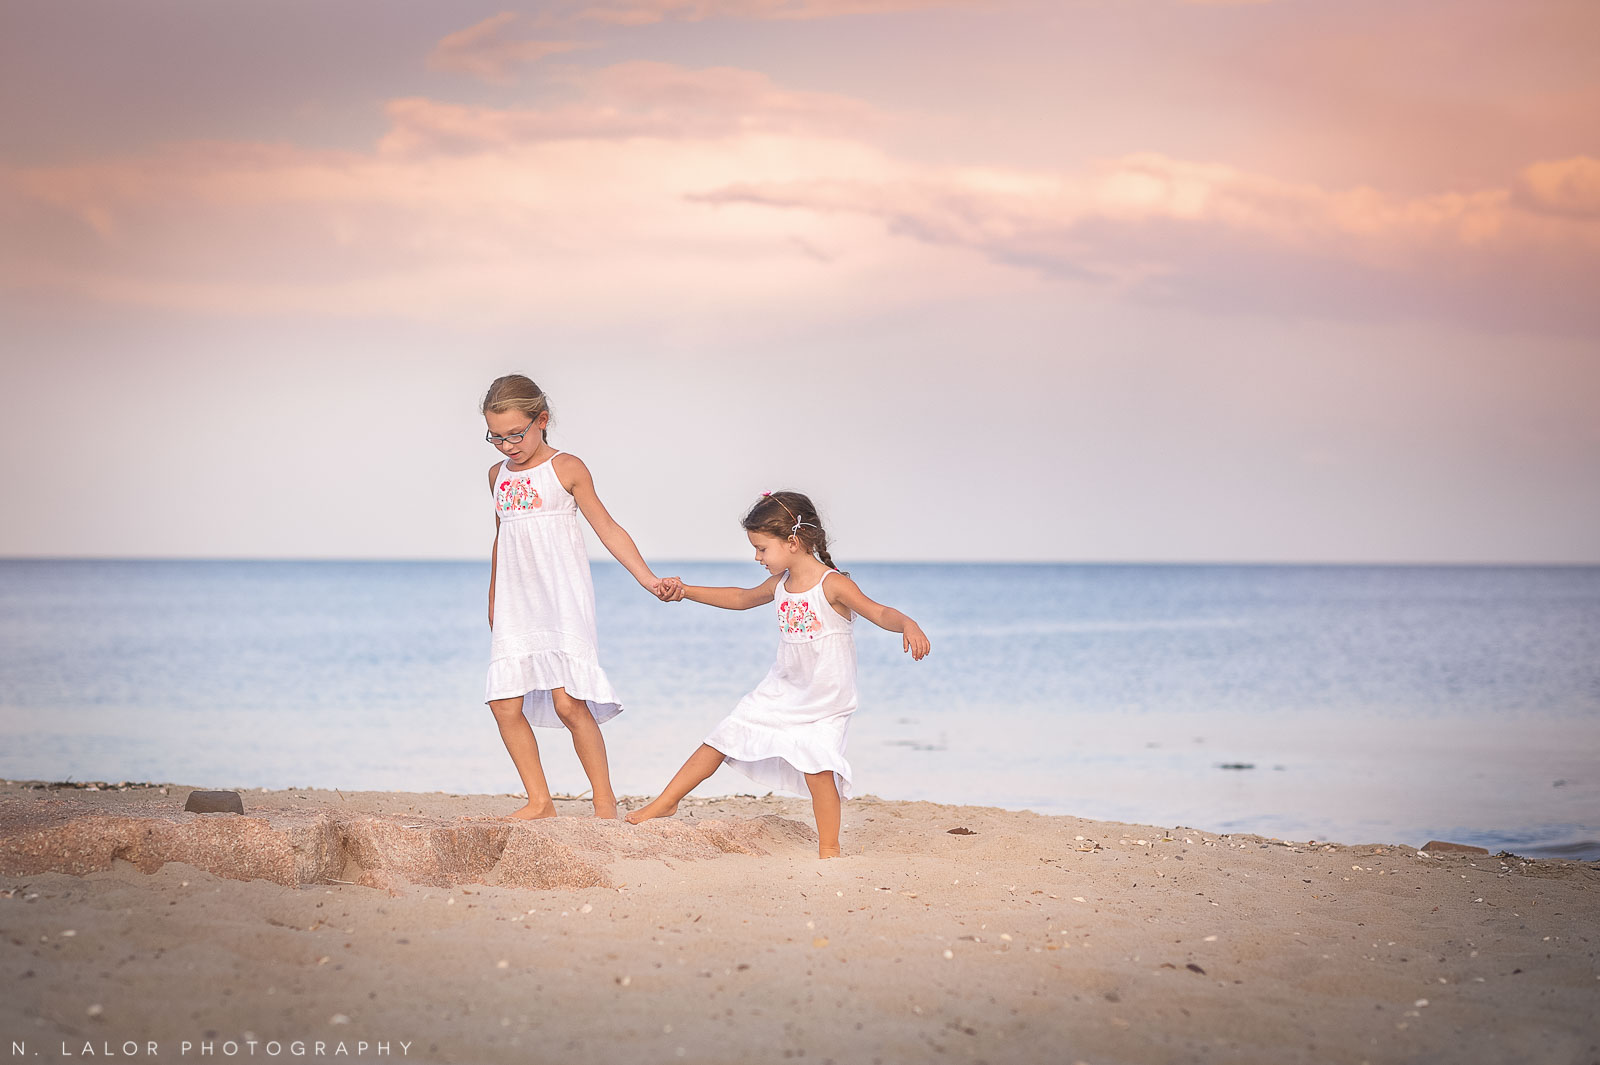 nlalor-photography-styled-beach-photo-session-milford-ct-1.jpg